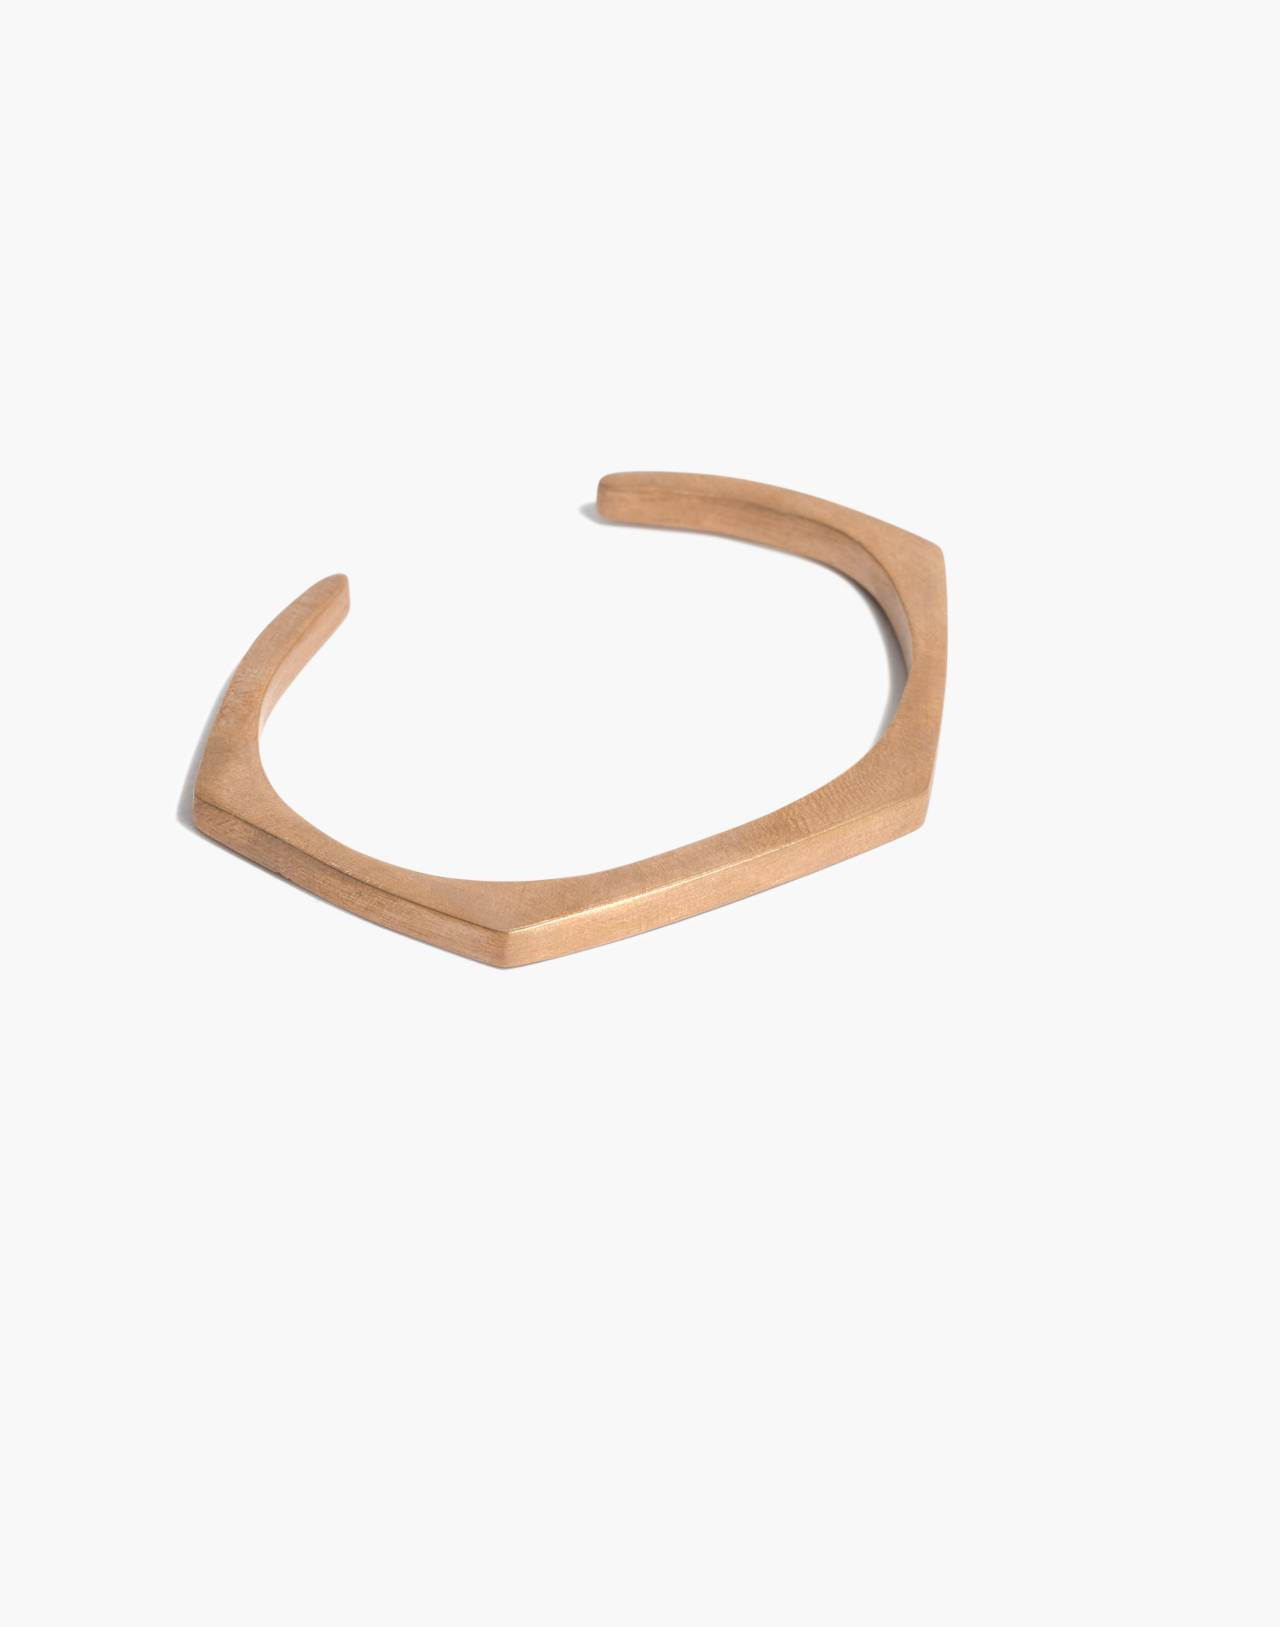 Moulton Angle Cuff Bracelet in red bronze image 1